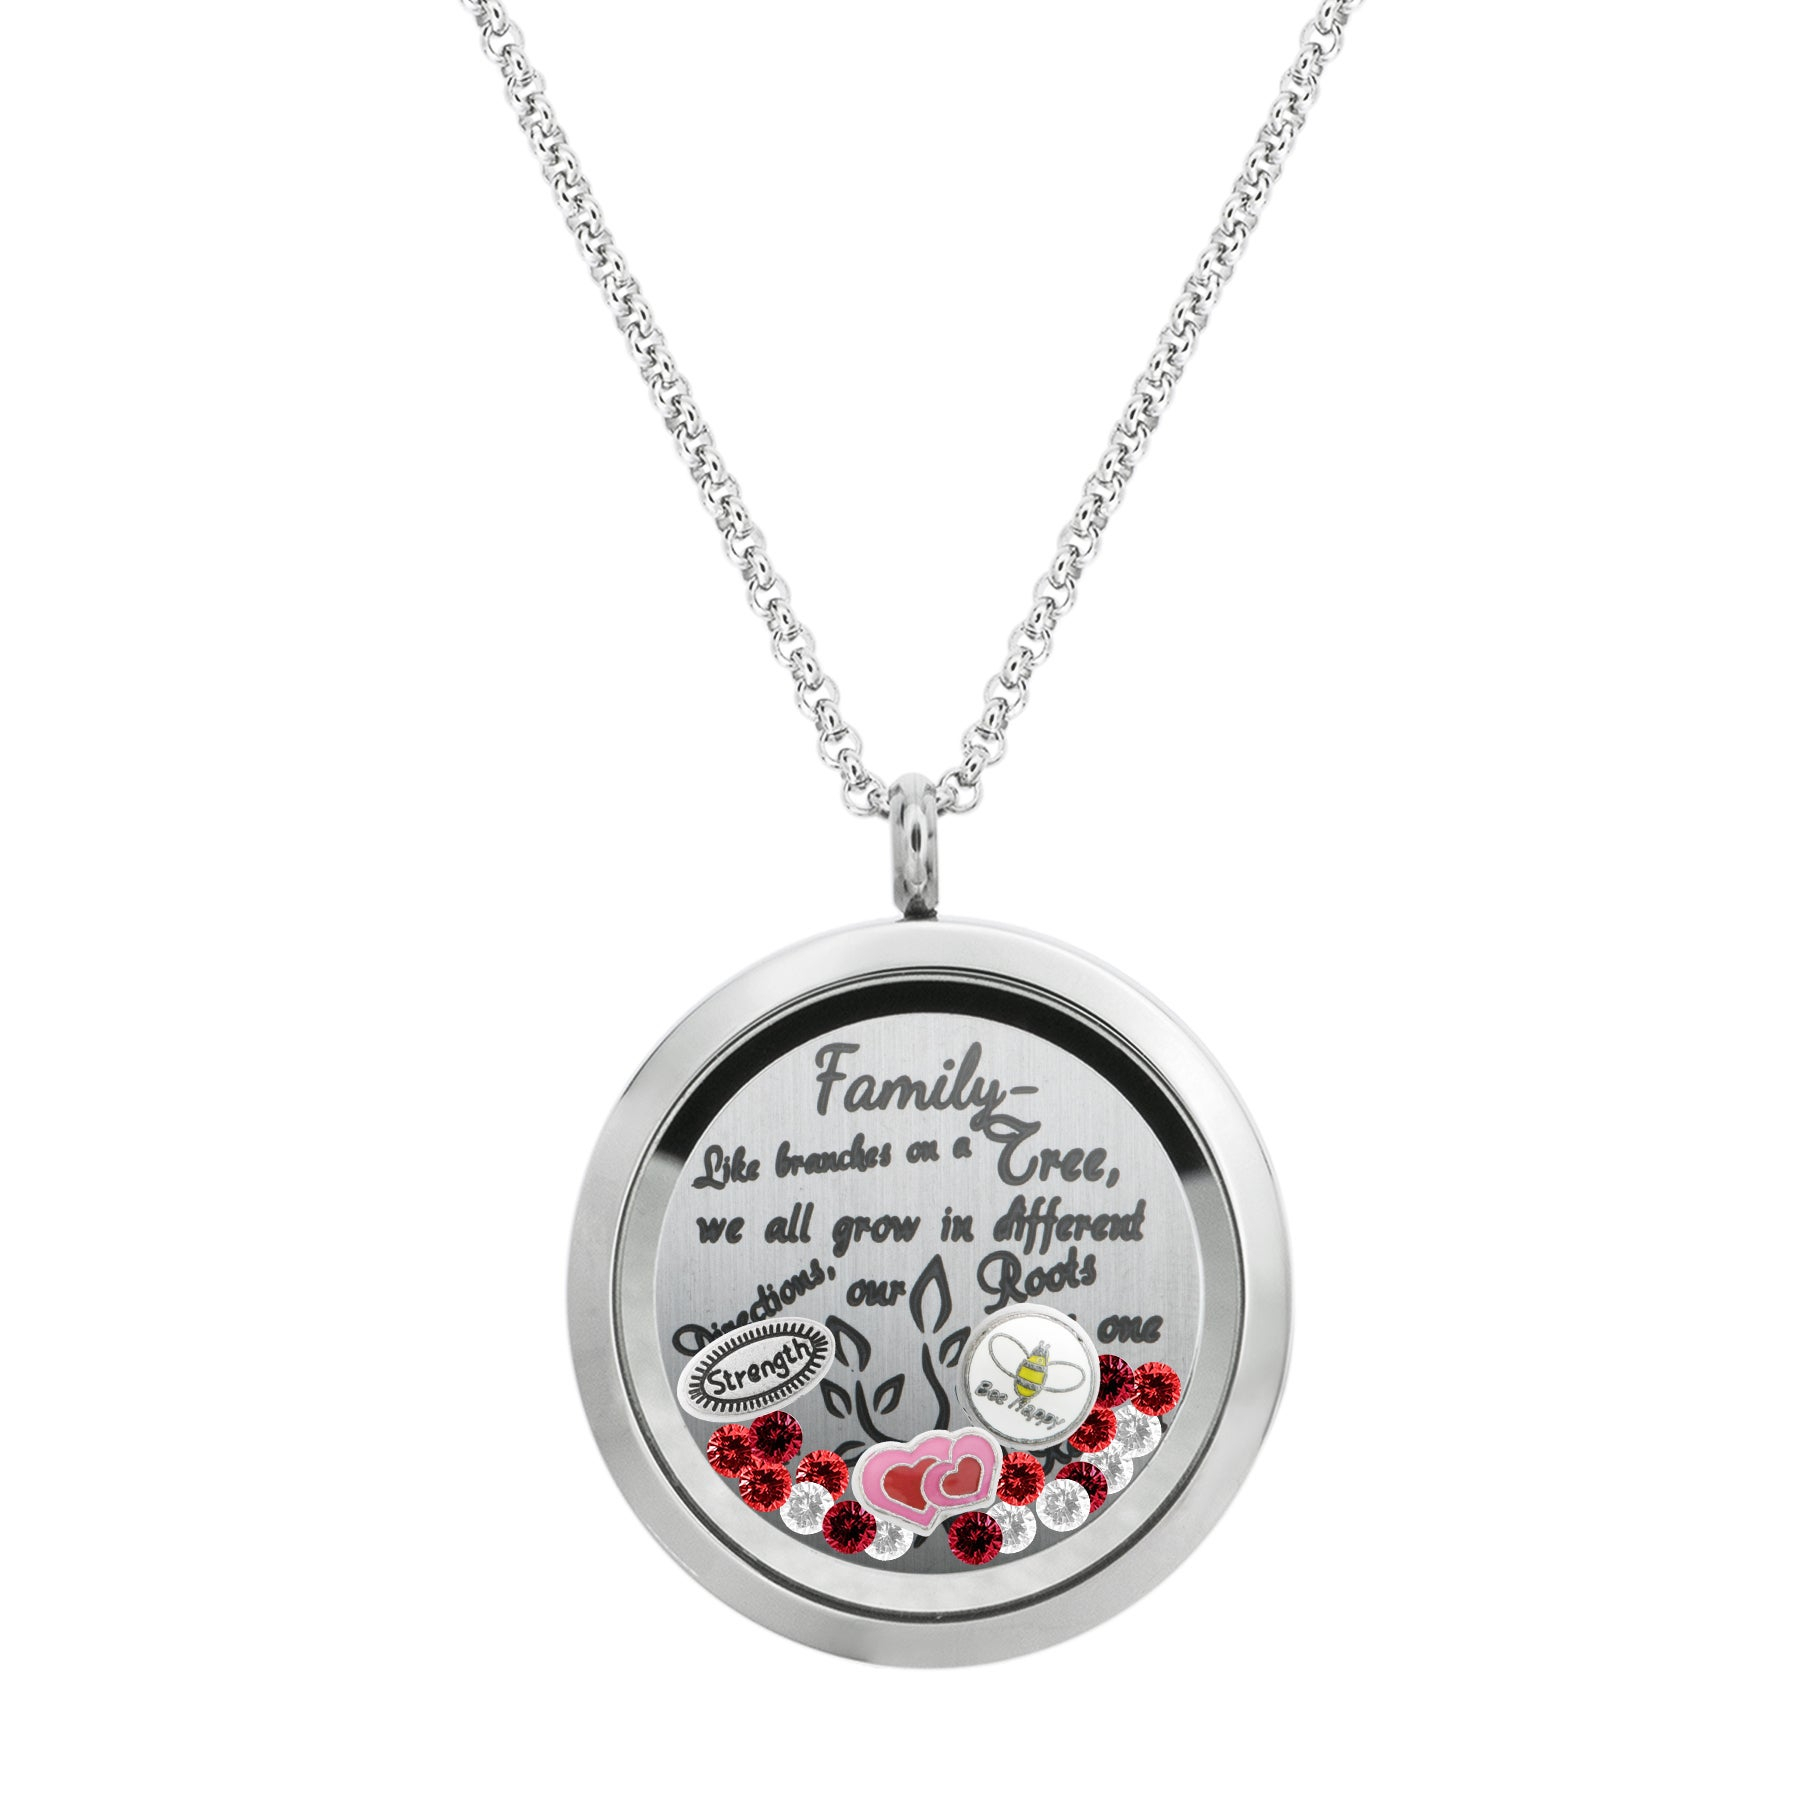 Queenberry Family Tree Love Heart Round Floating Locket Crystals Charm Necklace Pendant For Most Current Family Tree Heart Pendant Necklaces (View 14 of 25)